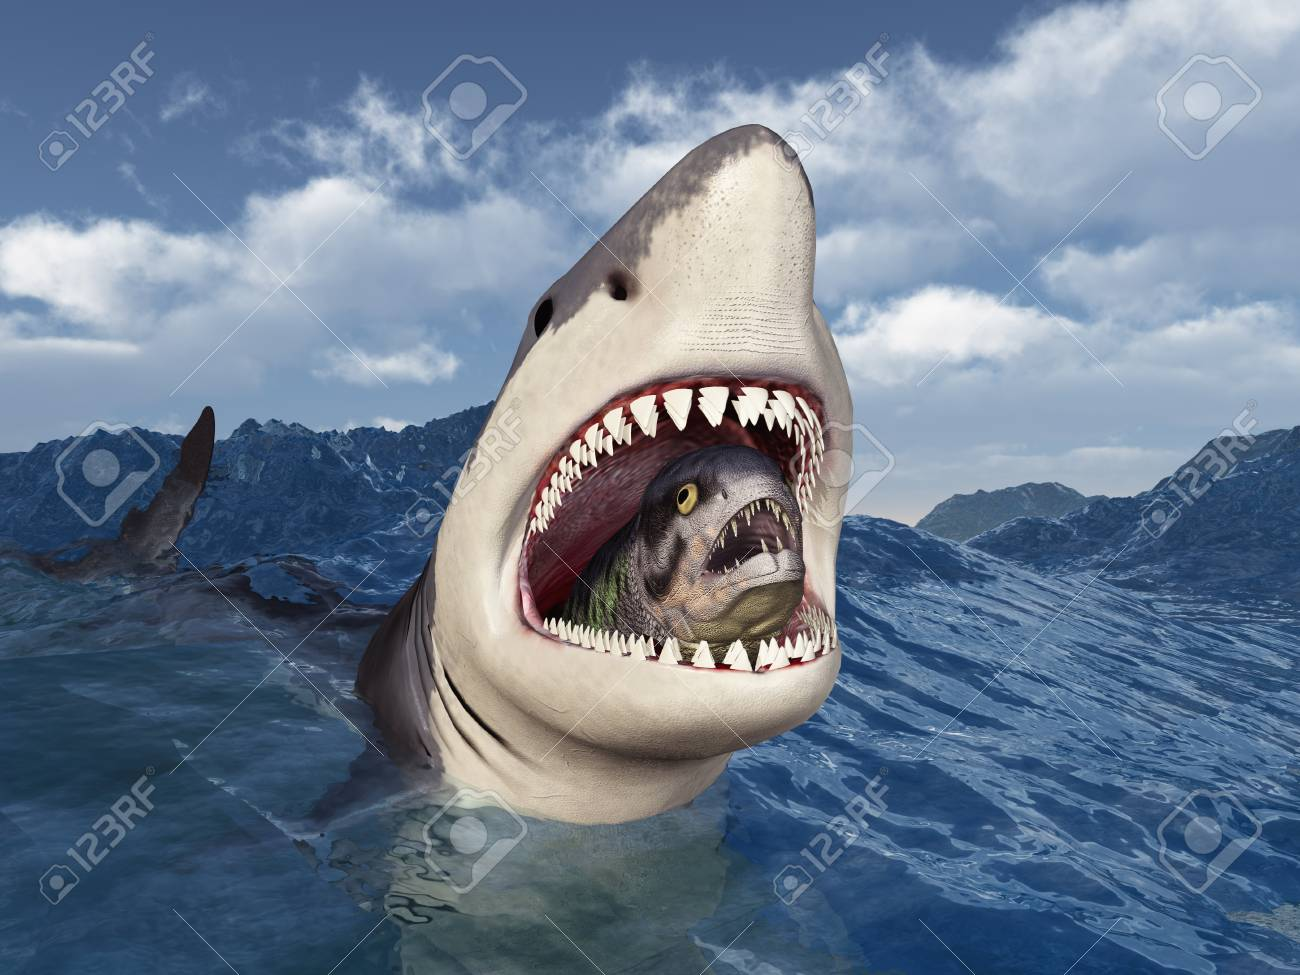 Great white shark with prey in its mouth in stormy sea